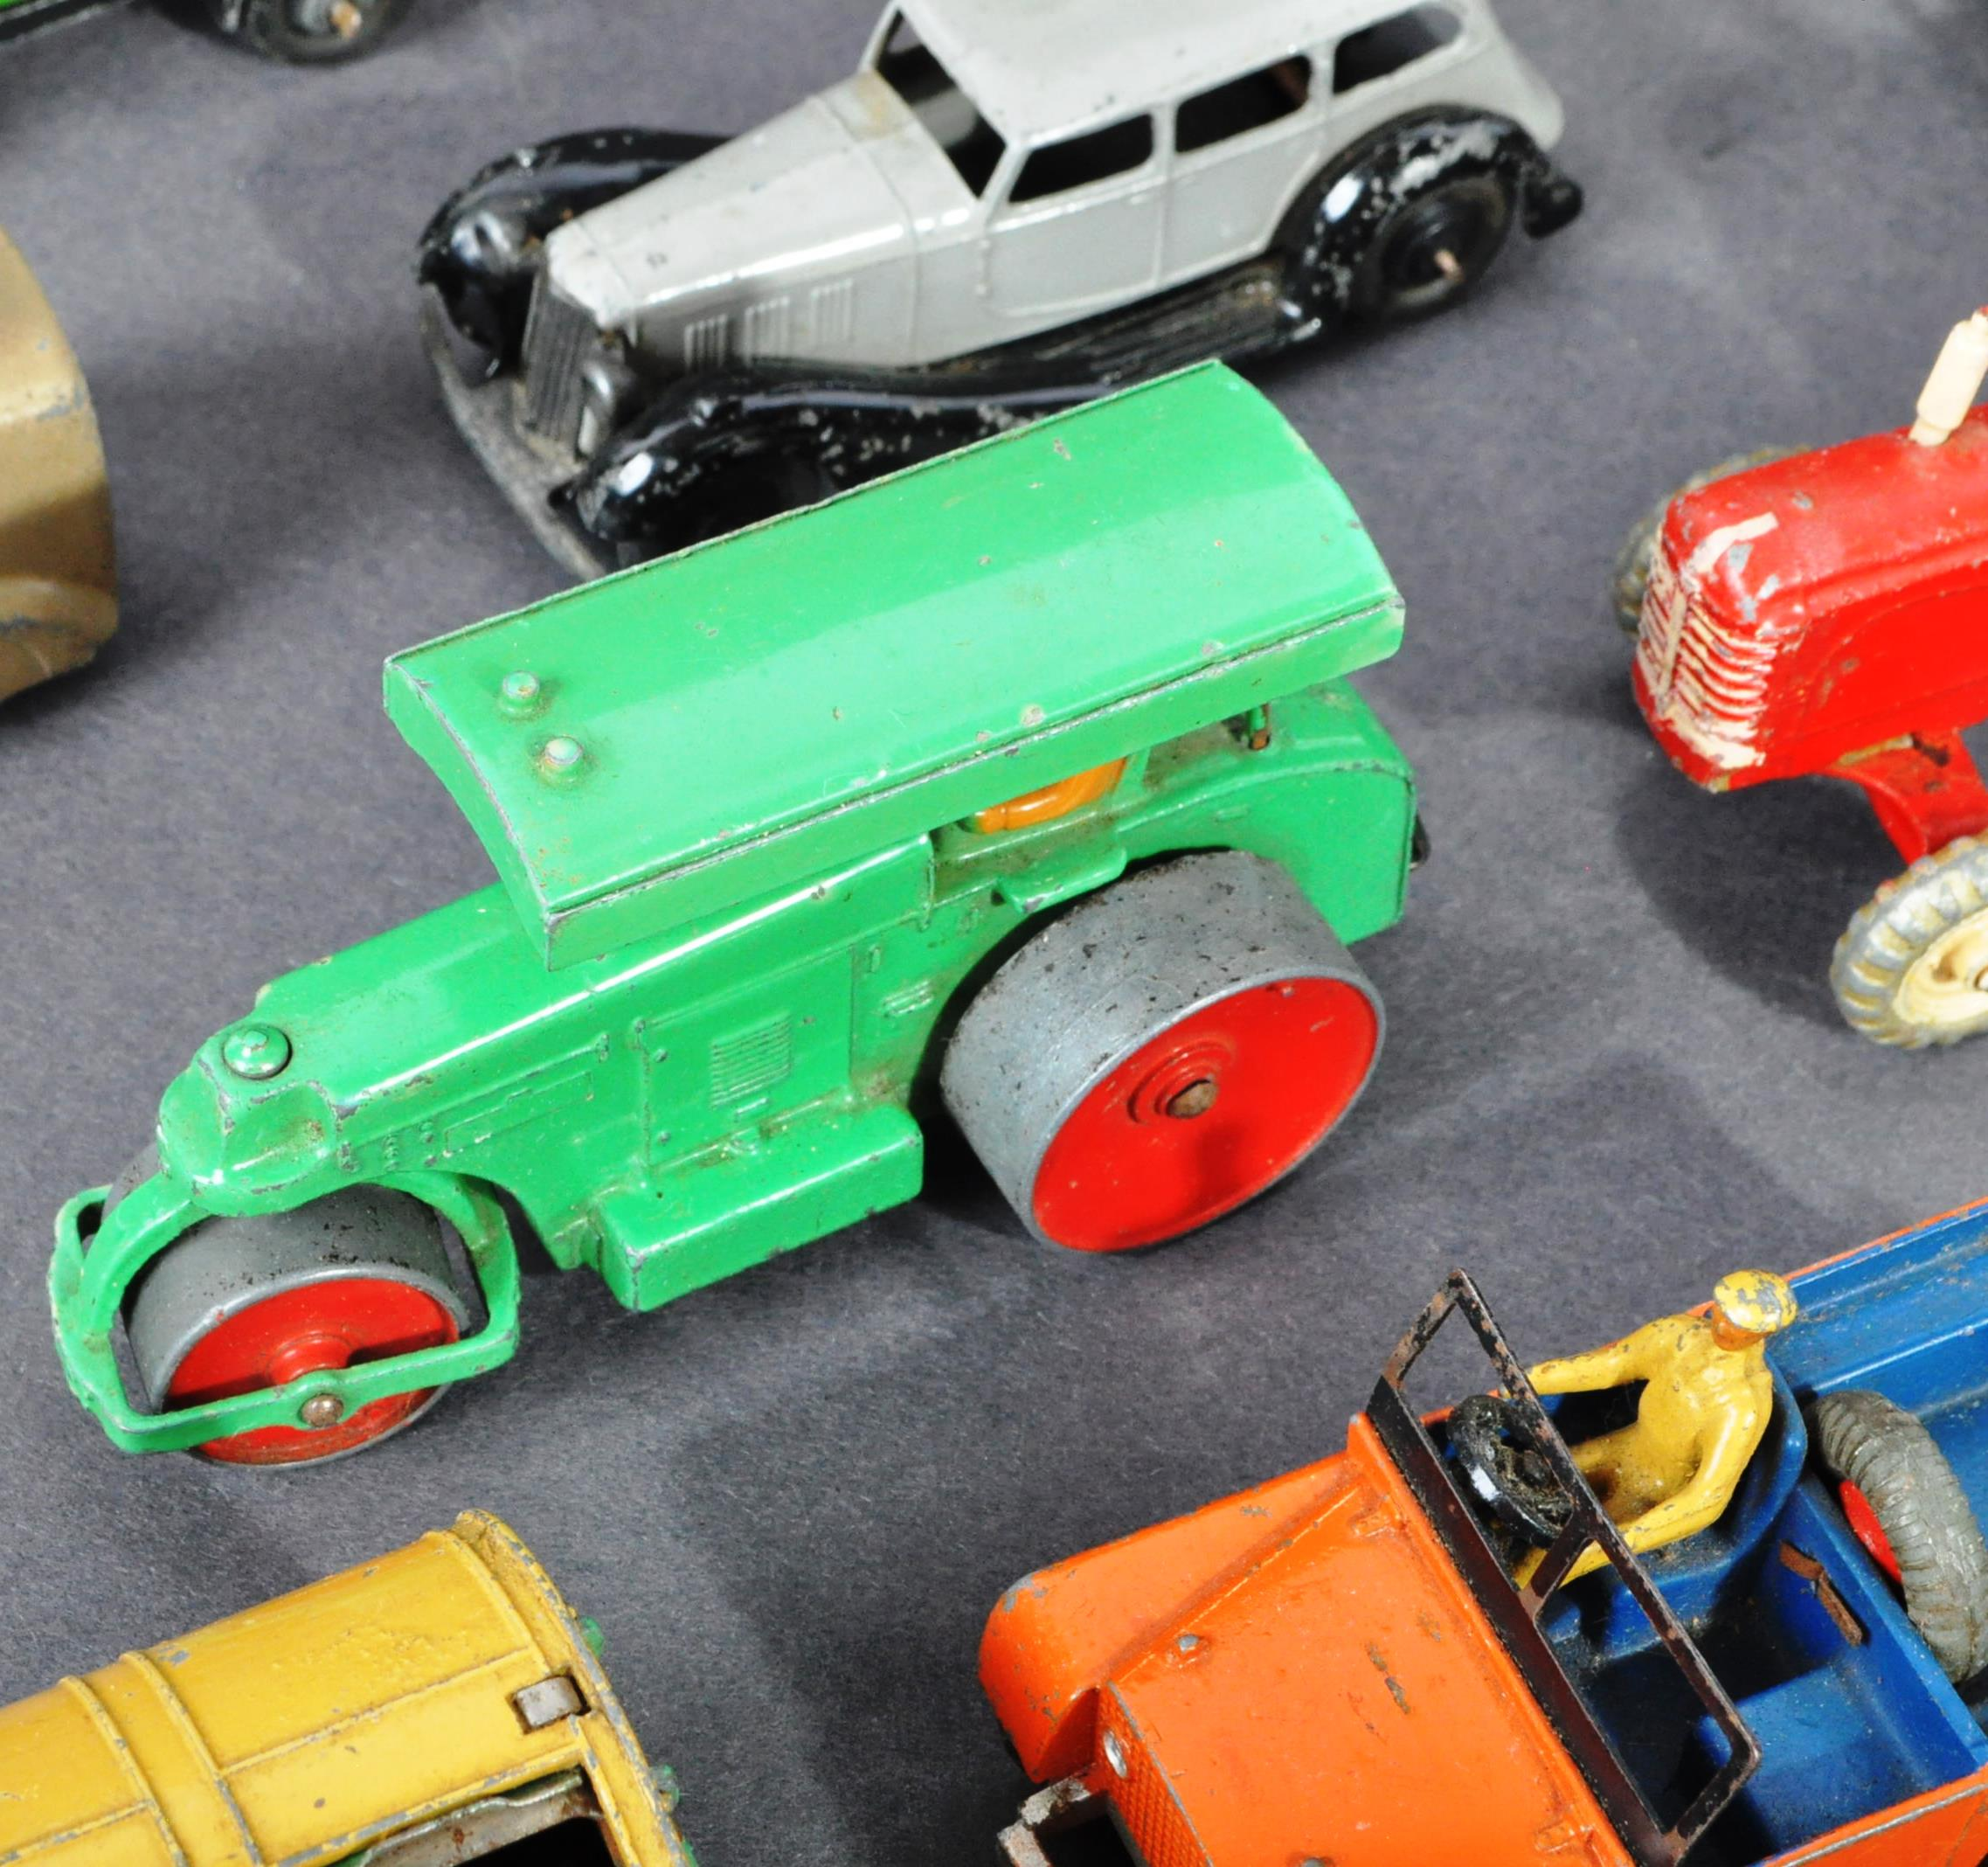 COLLECTION OF ORIGINAL VINTAGE DINKY TOYS DIECAST MODELS - Image 6 of 6